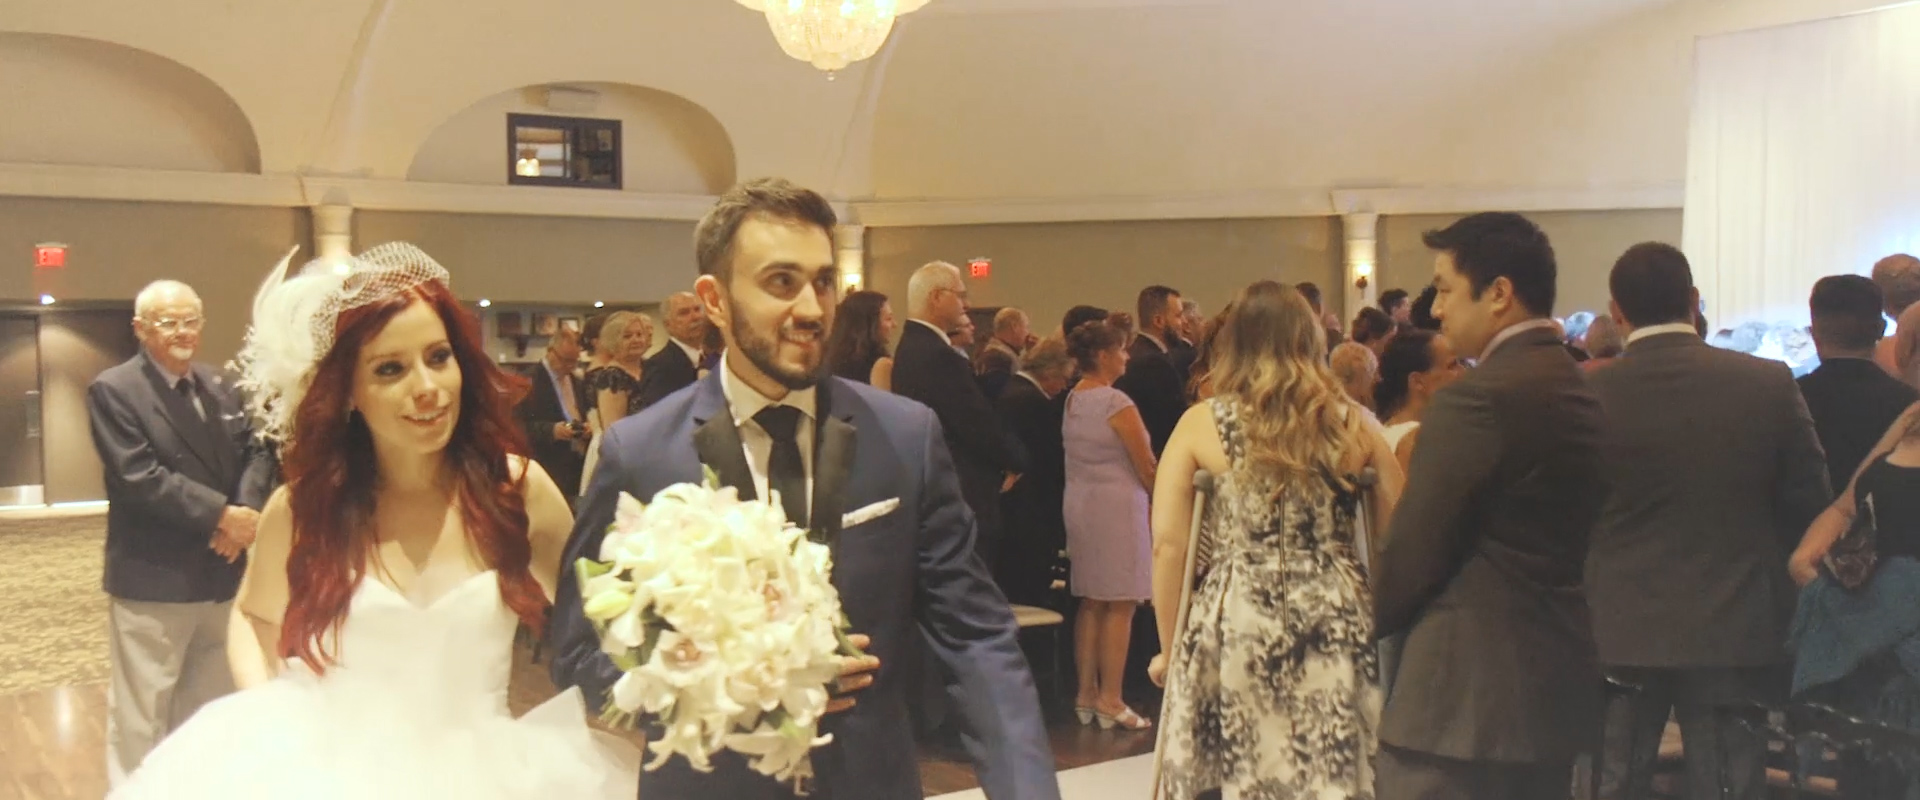 An image of a bride and groom walking down the aisle as husband and wife; taken from a Toronto Wedding Video